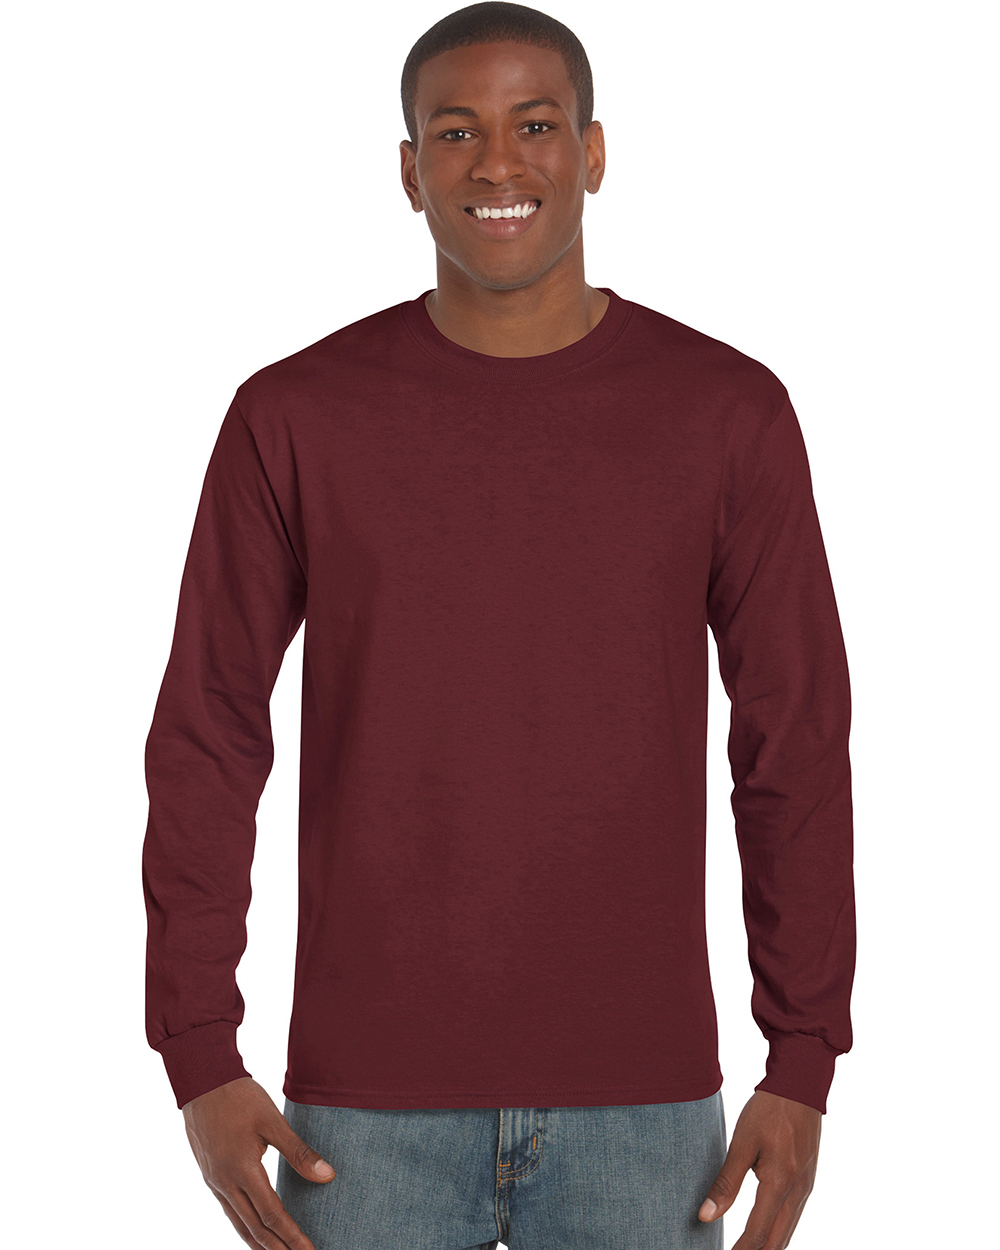 Gildan 2400GL     Ultra Cotton™    Classic Fit Adult Long Sleeve T-Shirt    6.0 oz. 100% Cotton